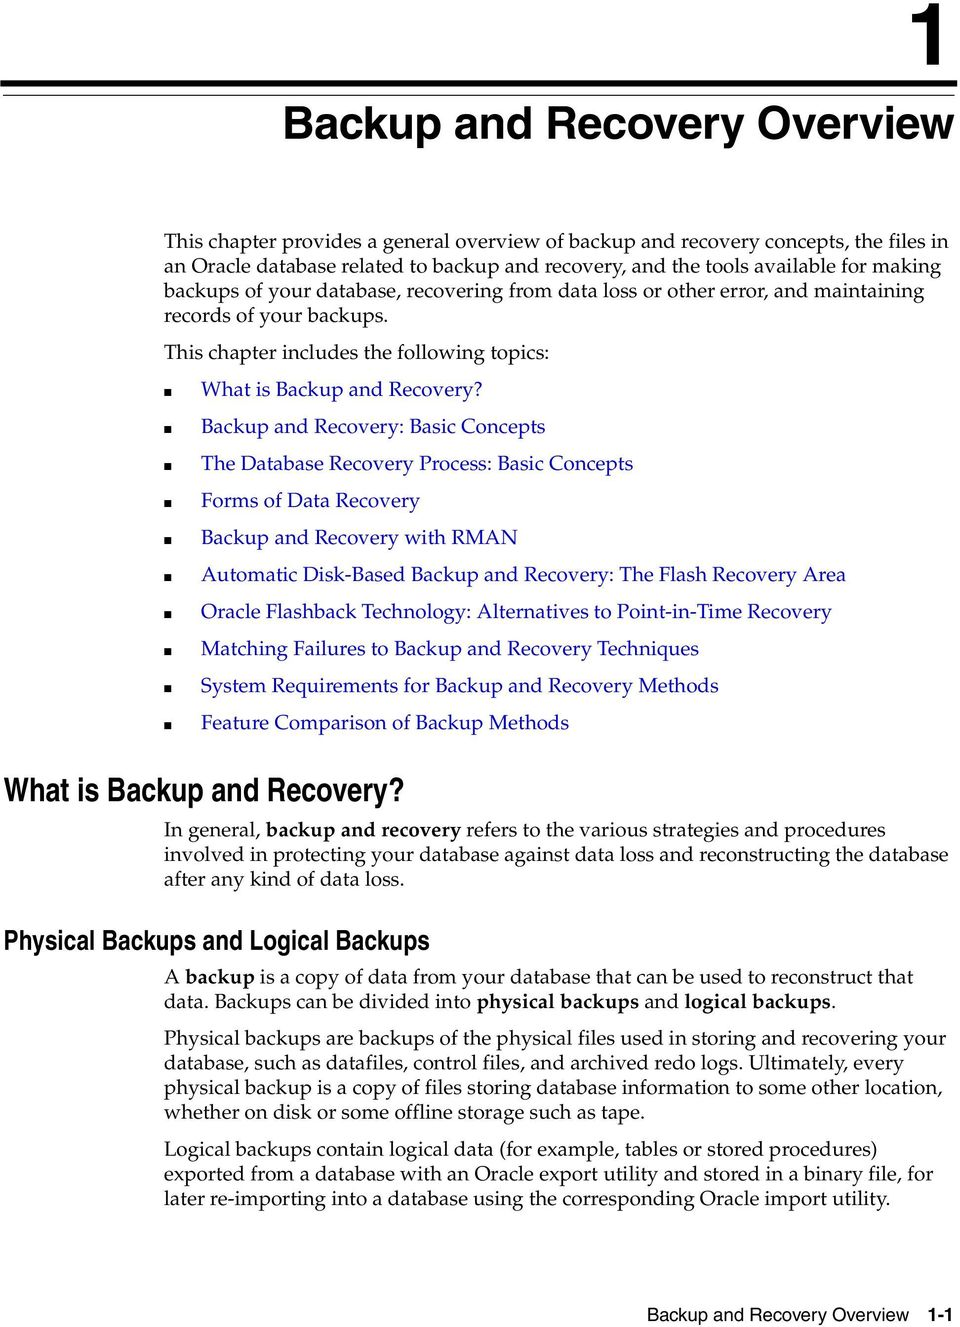 Backup and Recovery: Basic Concepts The Database Recovery Process: Basic Concepts Forms of Data Recovery Backup and Recovery with RMAN Automatic Disk-Based Backup and Recovery: The Flash Recovery